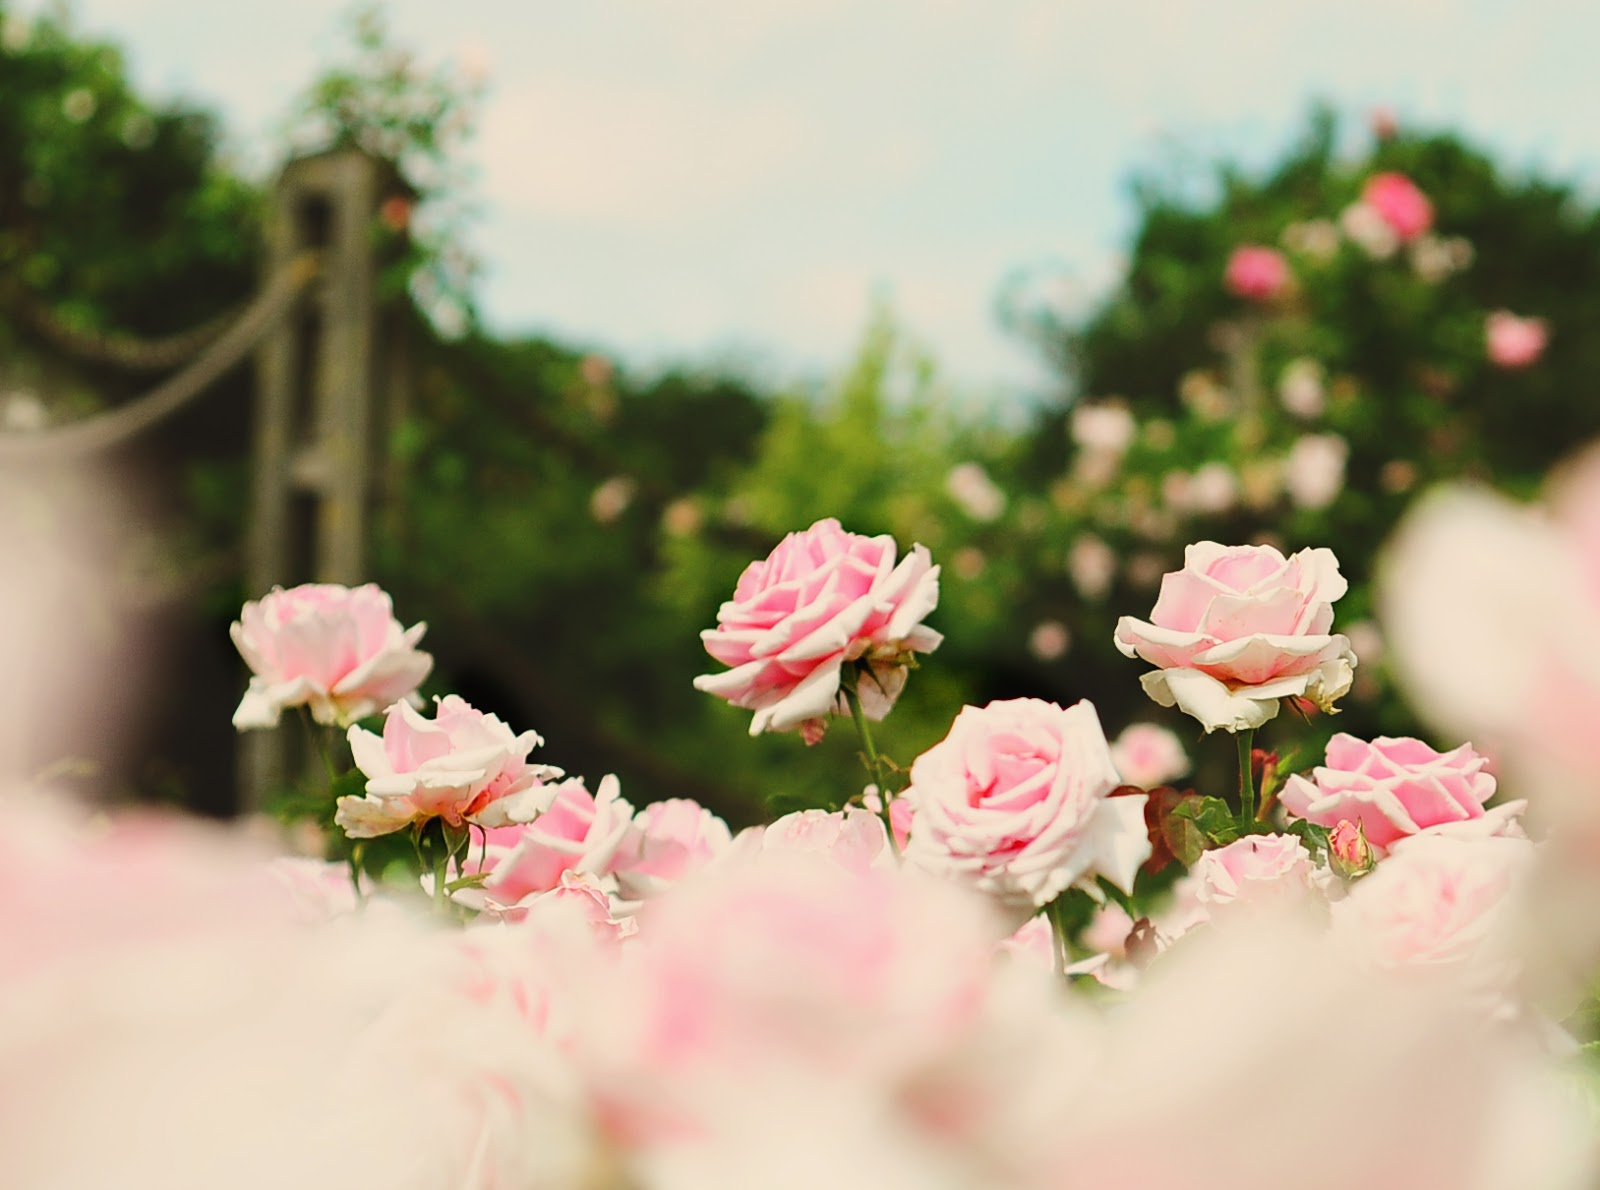 Love Garden Roses: The Rose Garden { Queen Mary's Rose Garden